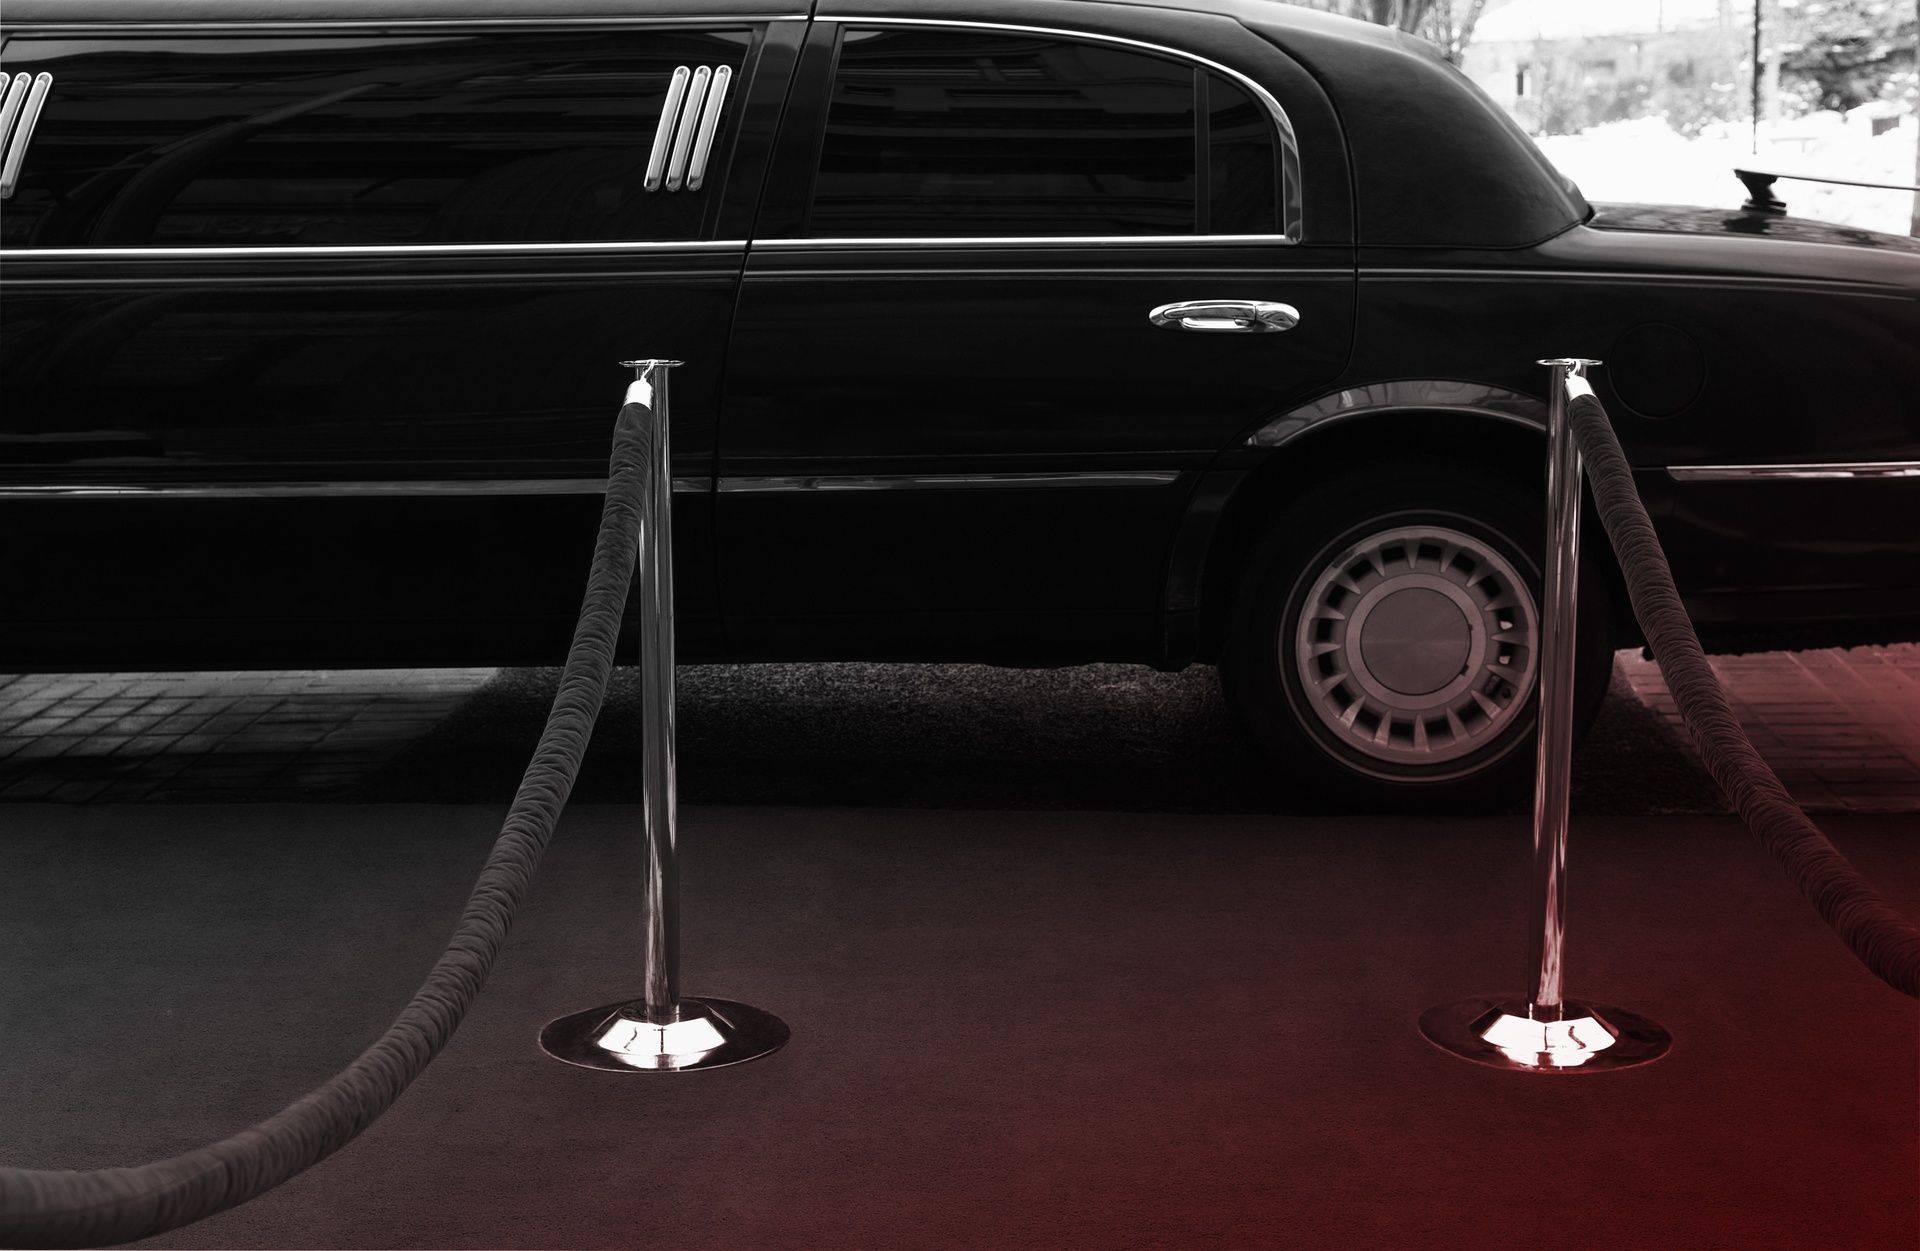 luxury service with affordable cost